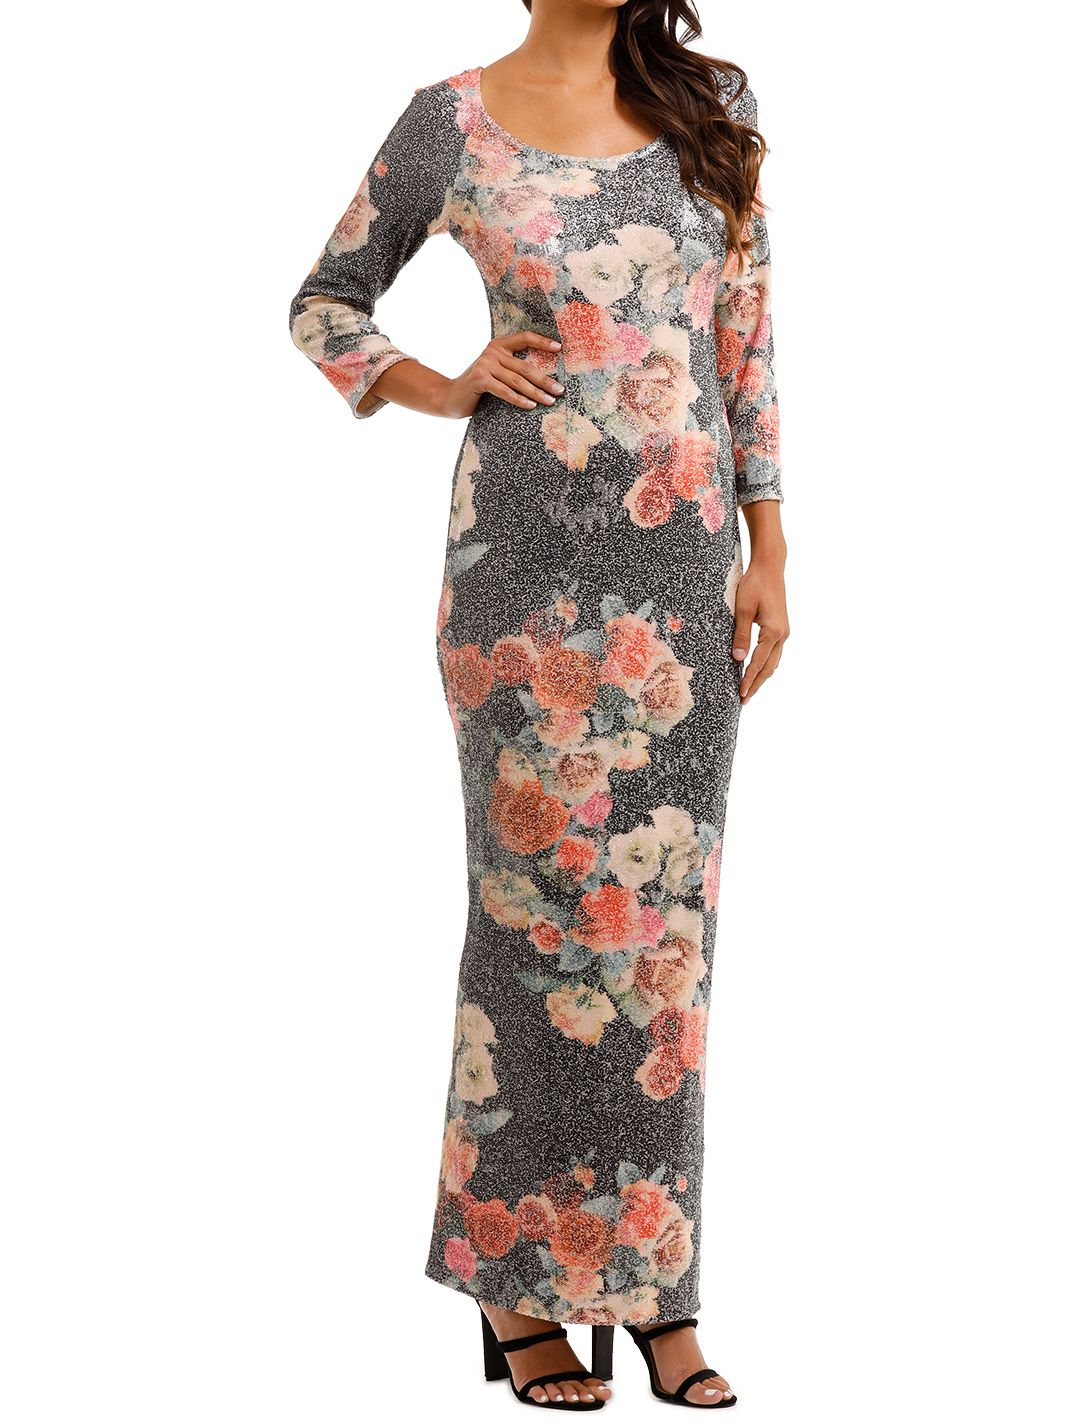 Moss and Spy	Matisse Gown Floral Multi Floor Length